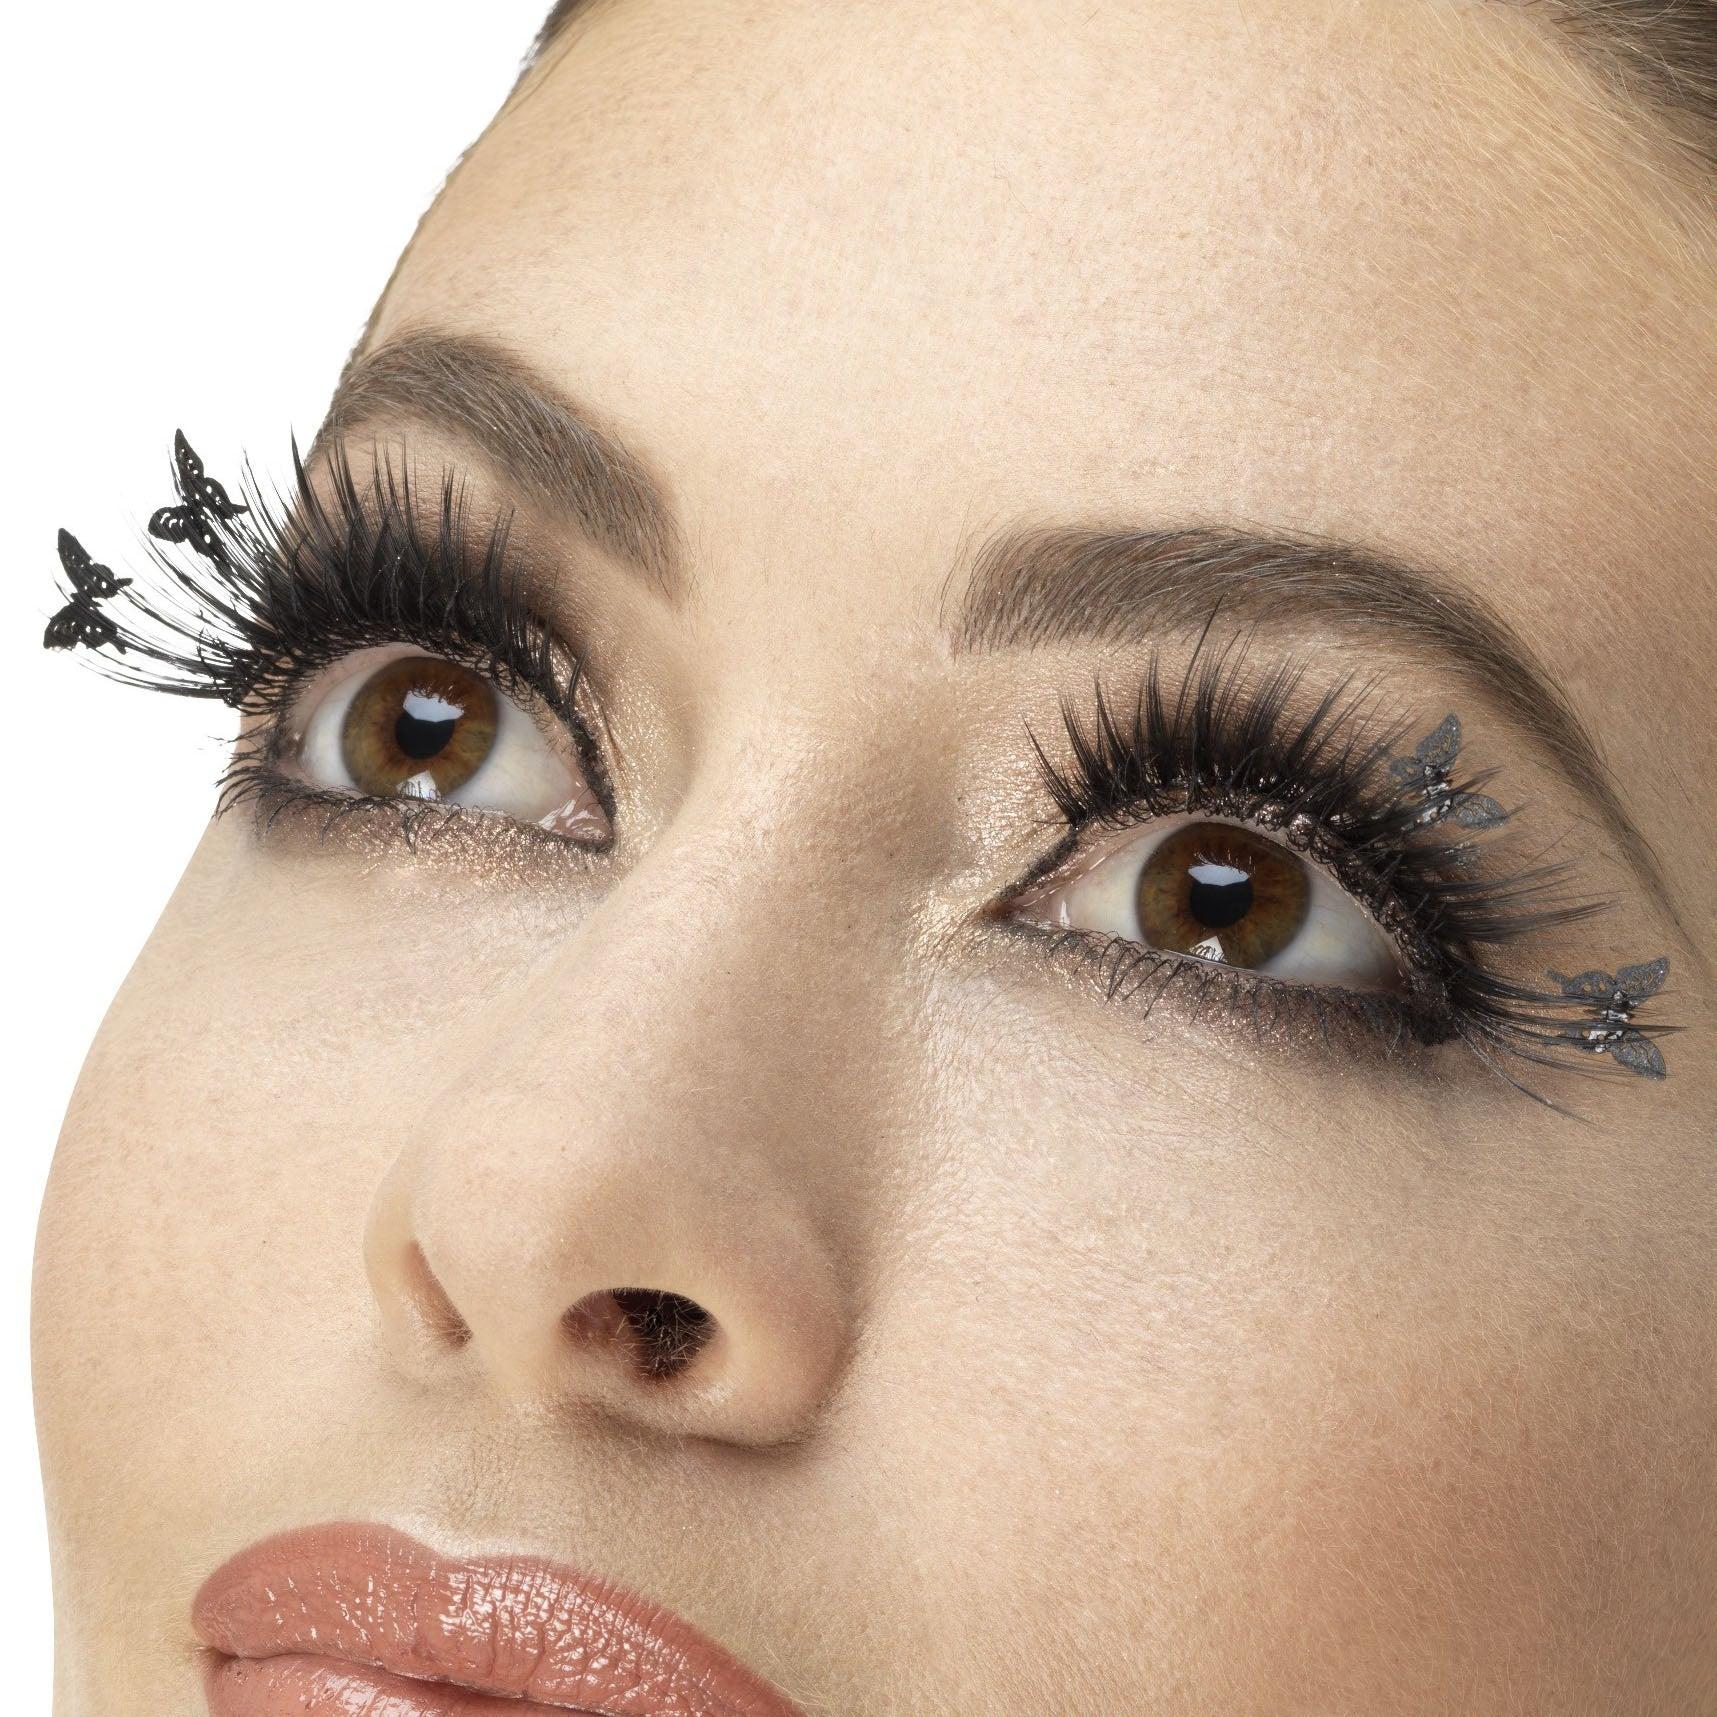 Fever False Eyelashes - Black Butterfly Winged - Red Carpet FX - Professional Makeup